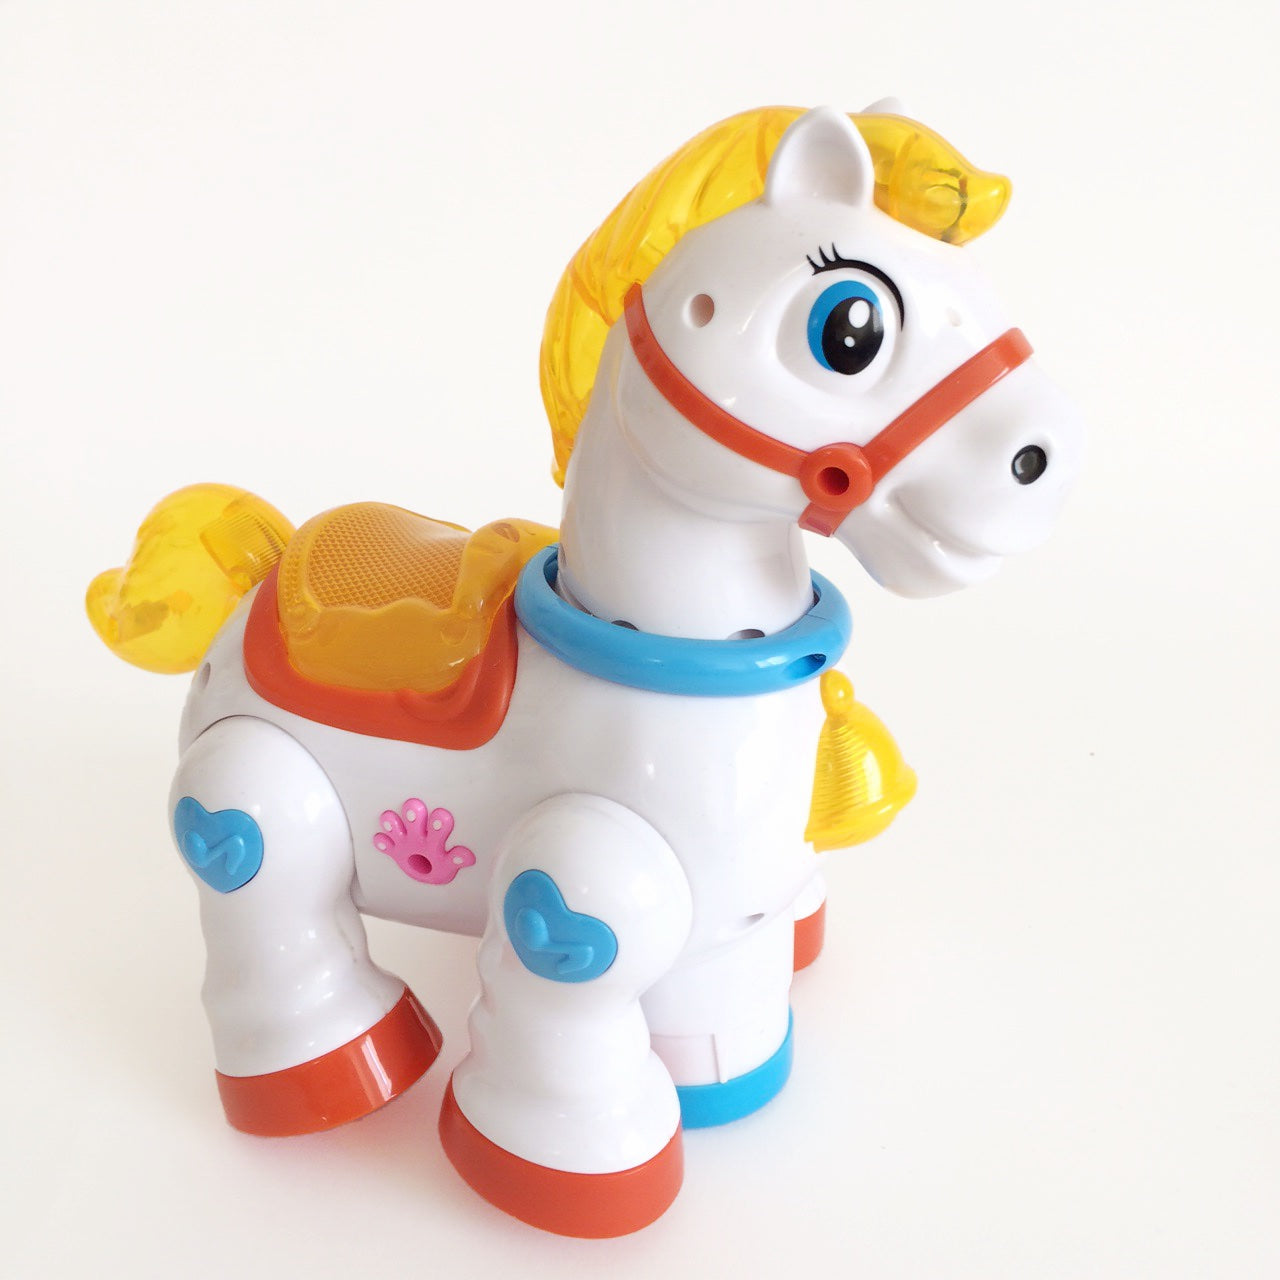 Lights & Action Toy Horse